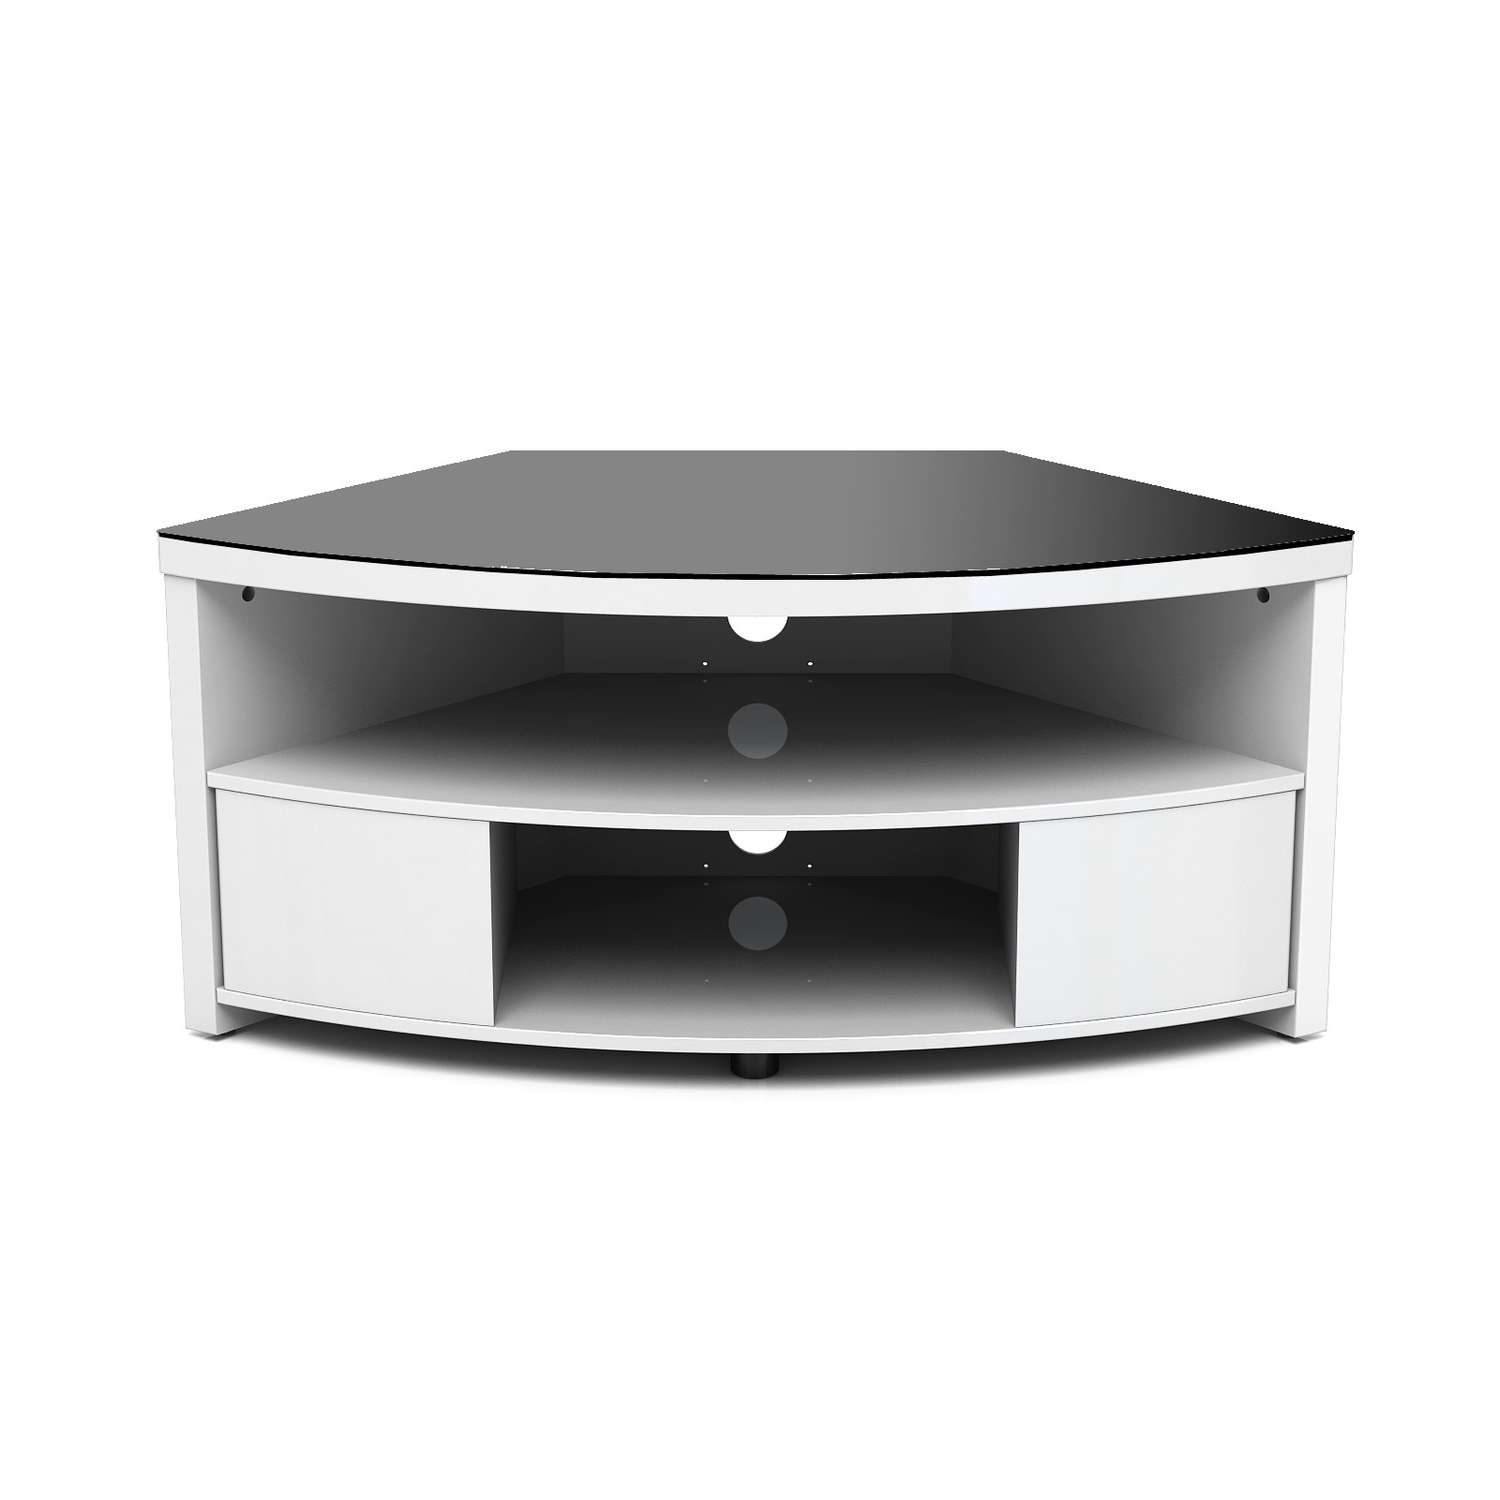 Small Corner Low Profile Tv Console With Storage And Drawer Intended For Low Corner Tv Cabinets (View 15 of 20)